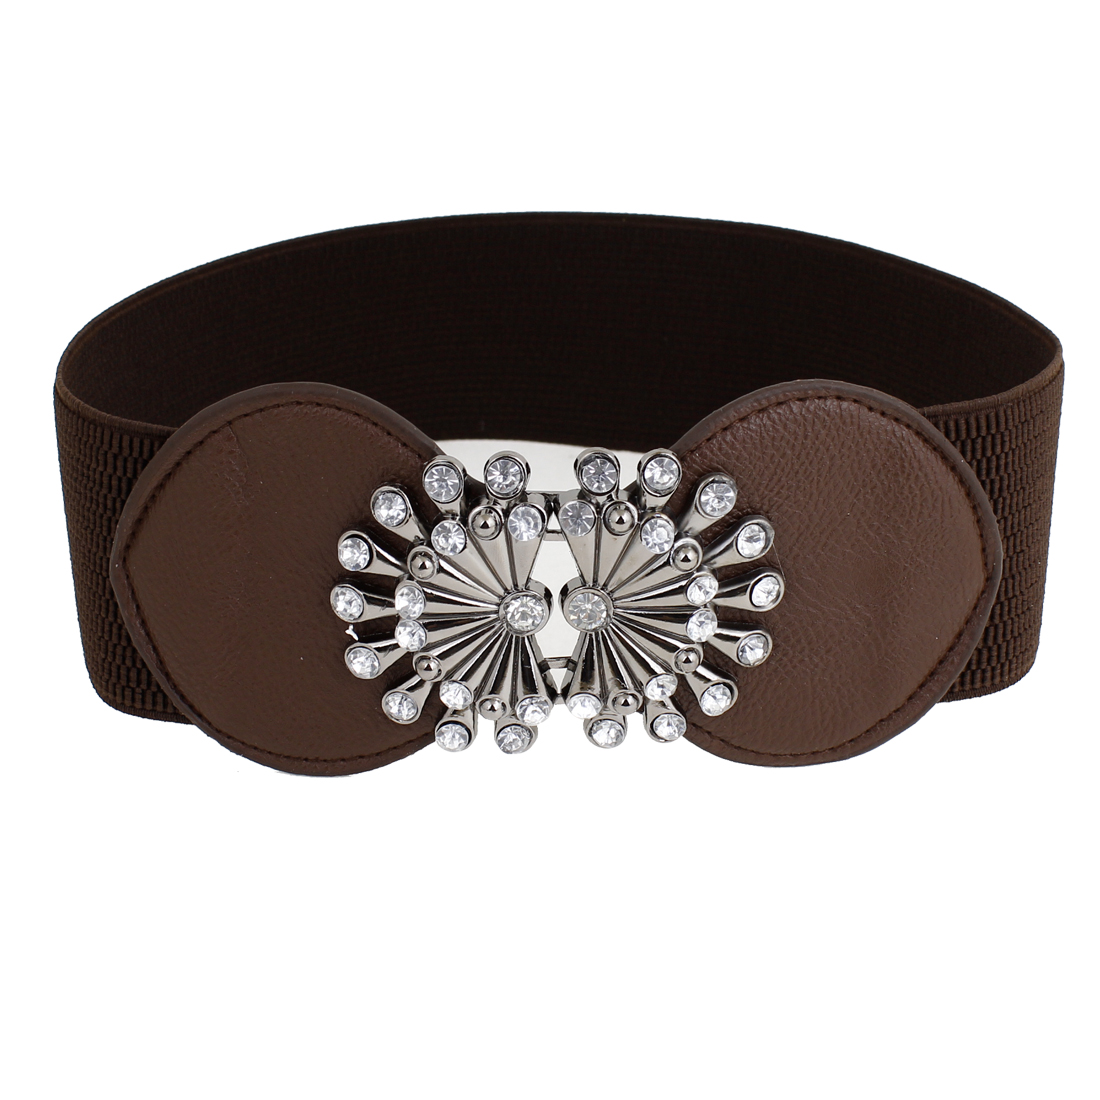 Lady Rhinestone Decor Interlock Buckle 6cm Width Dark Brown Waist Belt Band